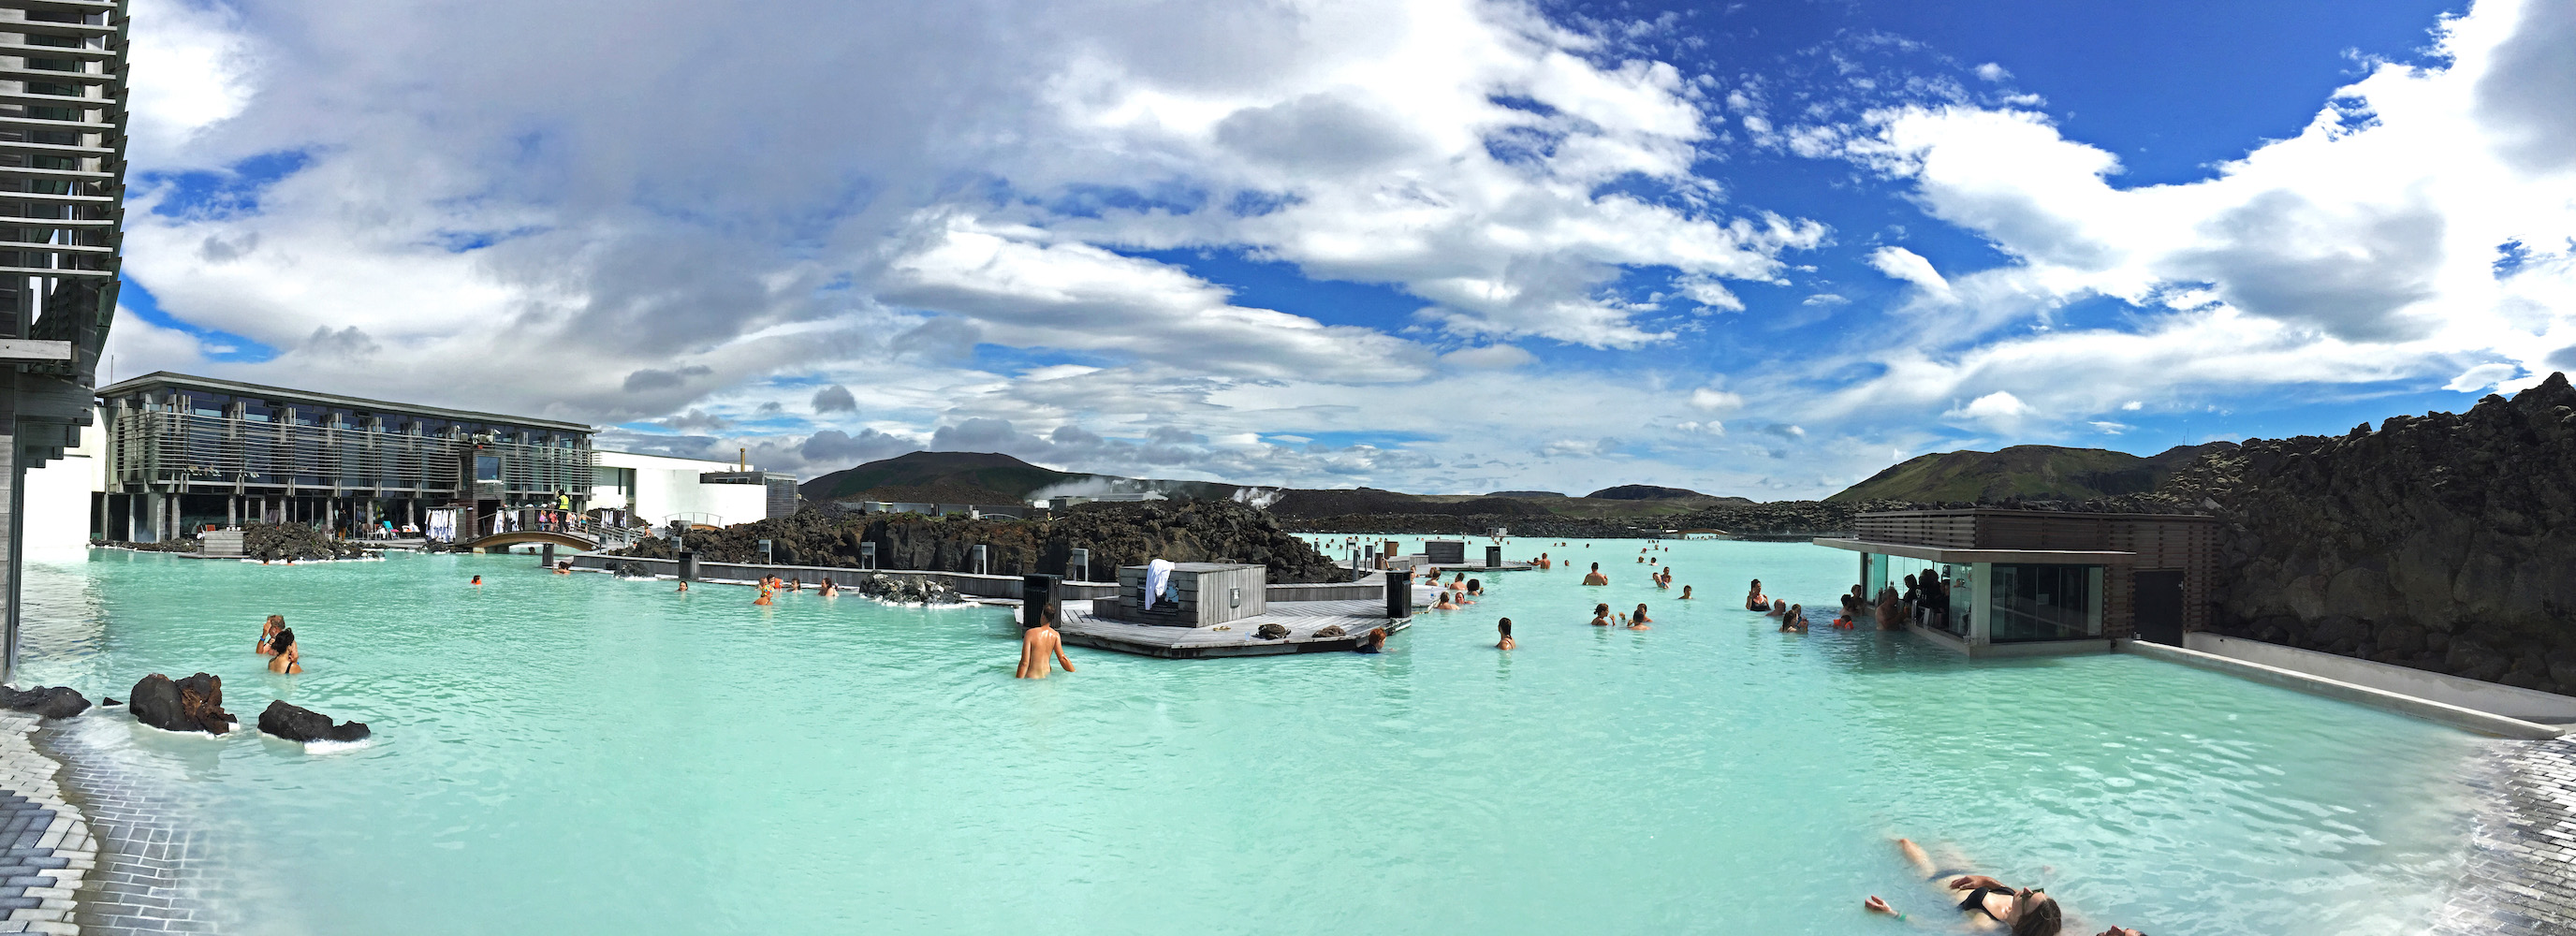 Blue lagoon et visite de reykjanes avec entr e incluse au for Where is the blue lagoon located in iceland